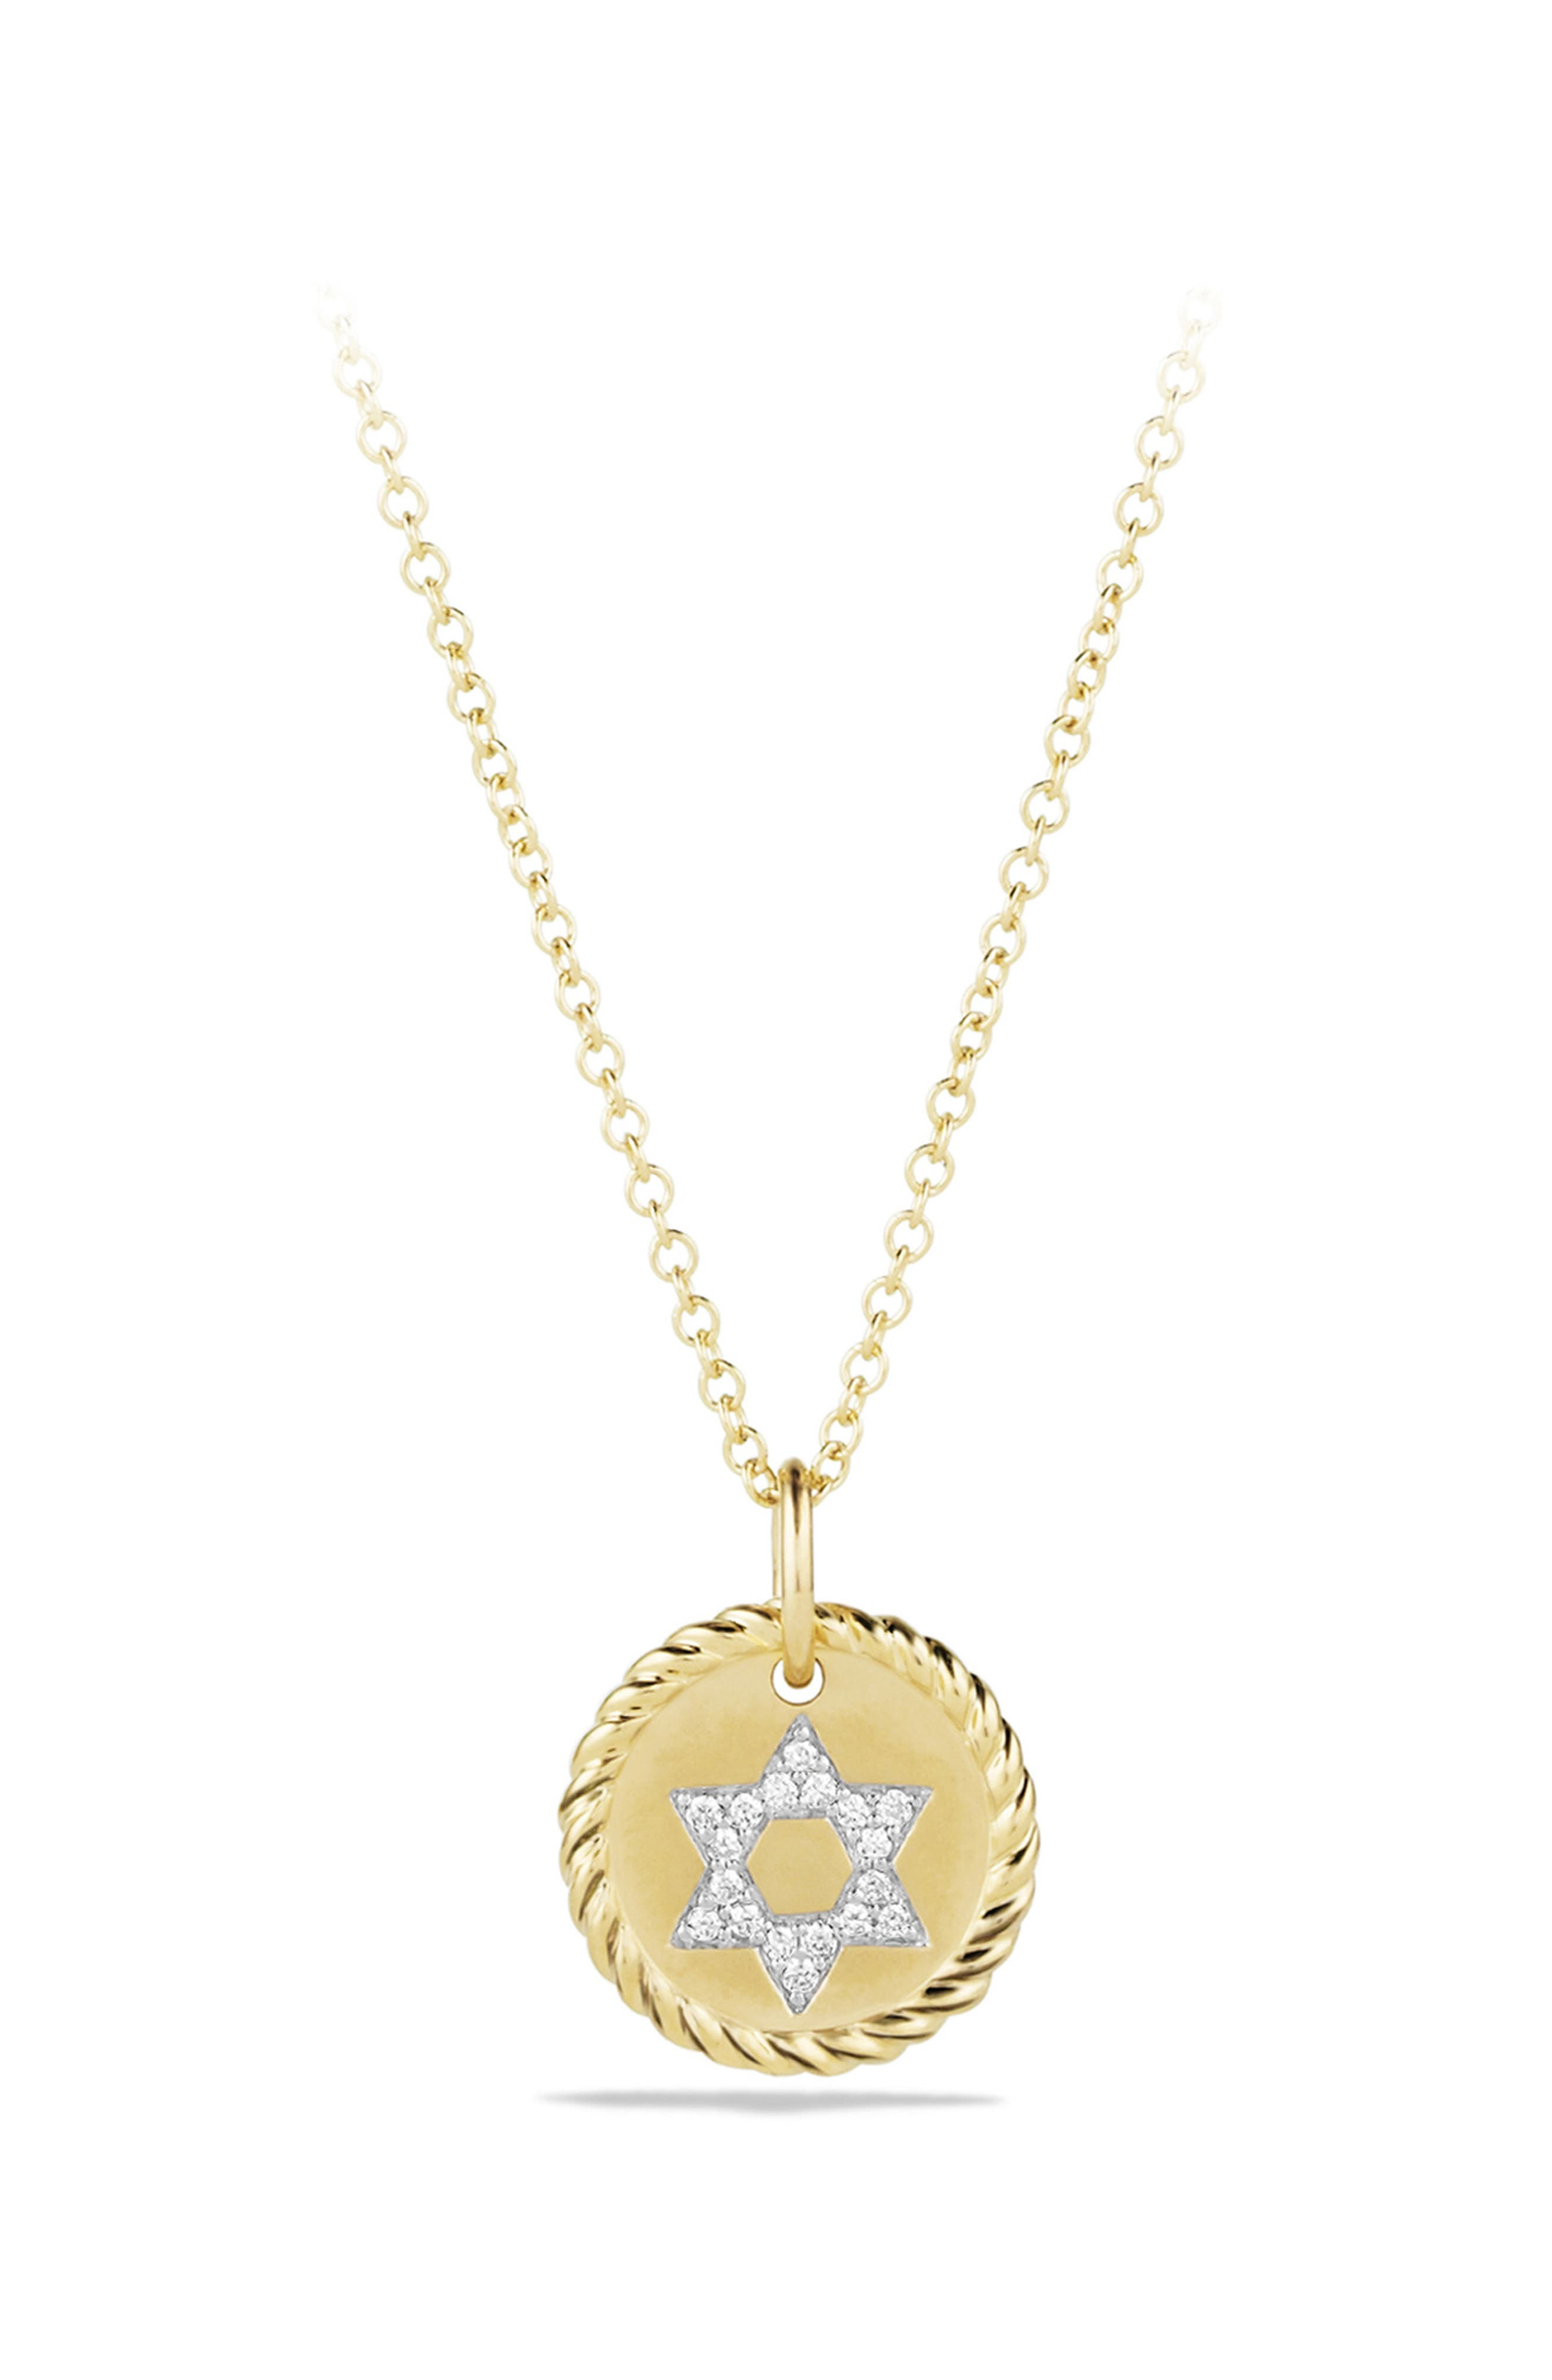 David Yurman 'Cable Collectibles' Star of David Charm Necklace with Diamonds in Gold